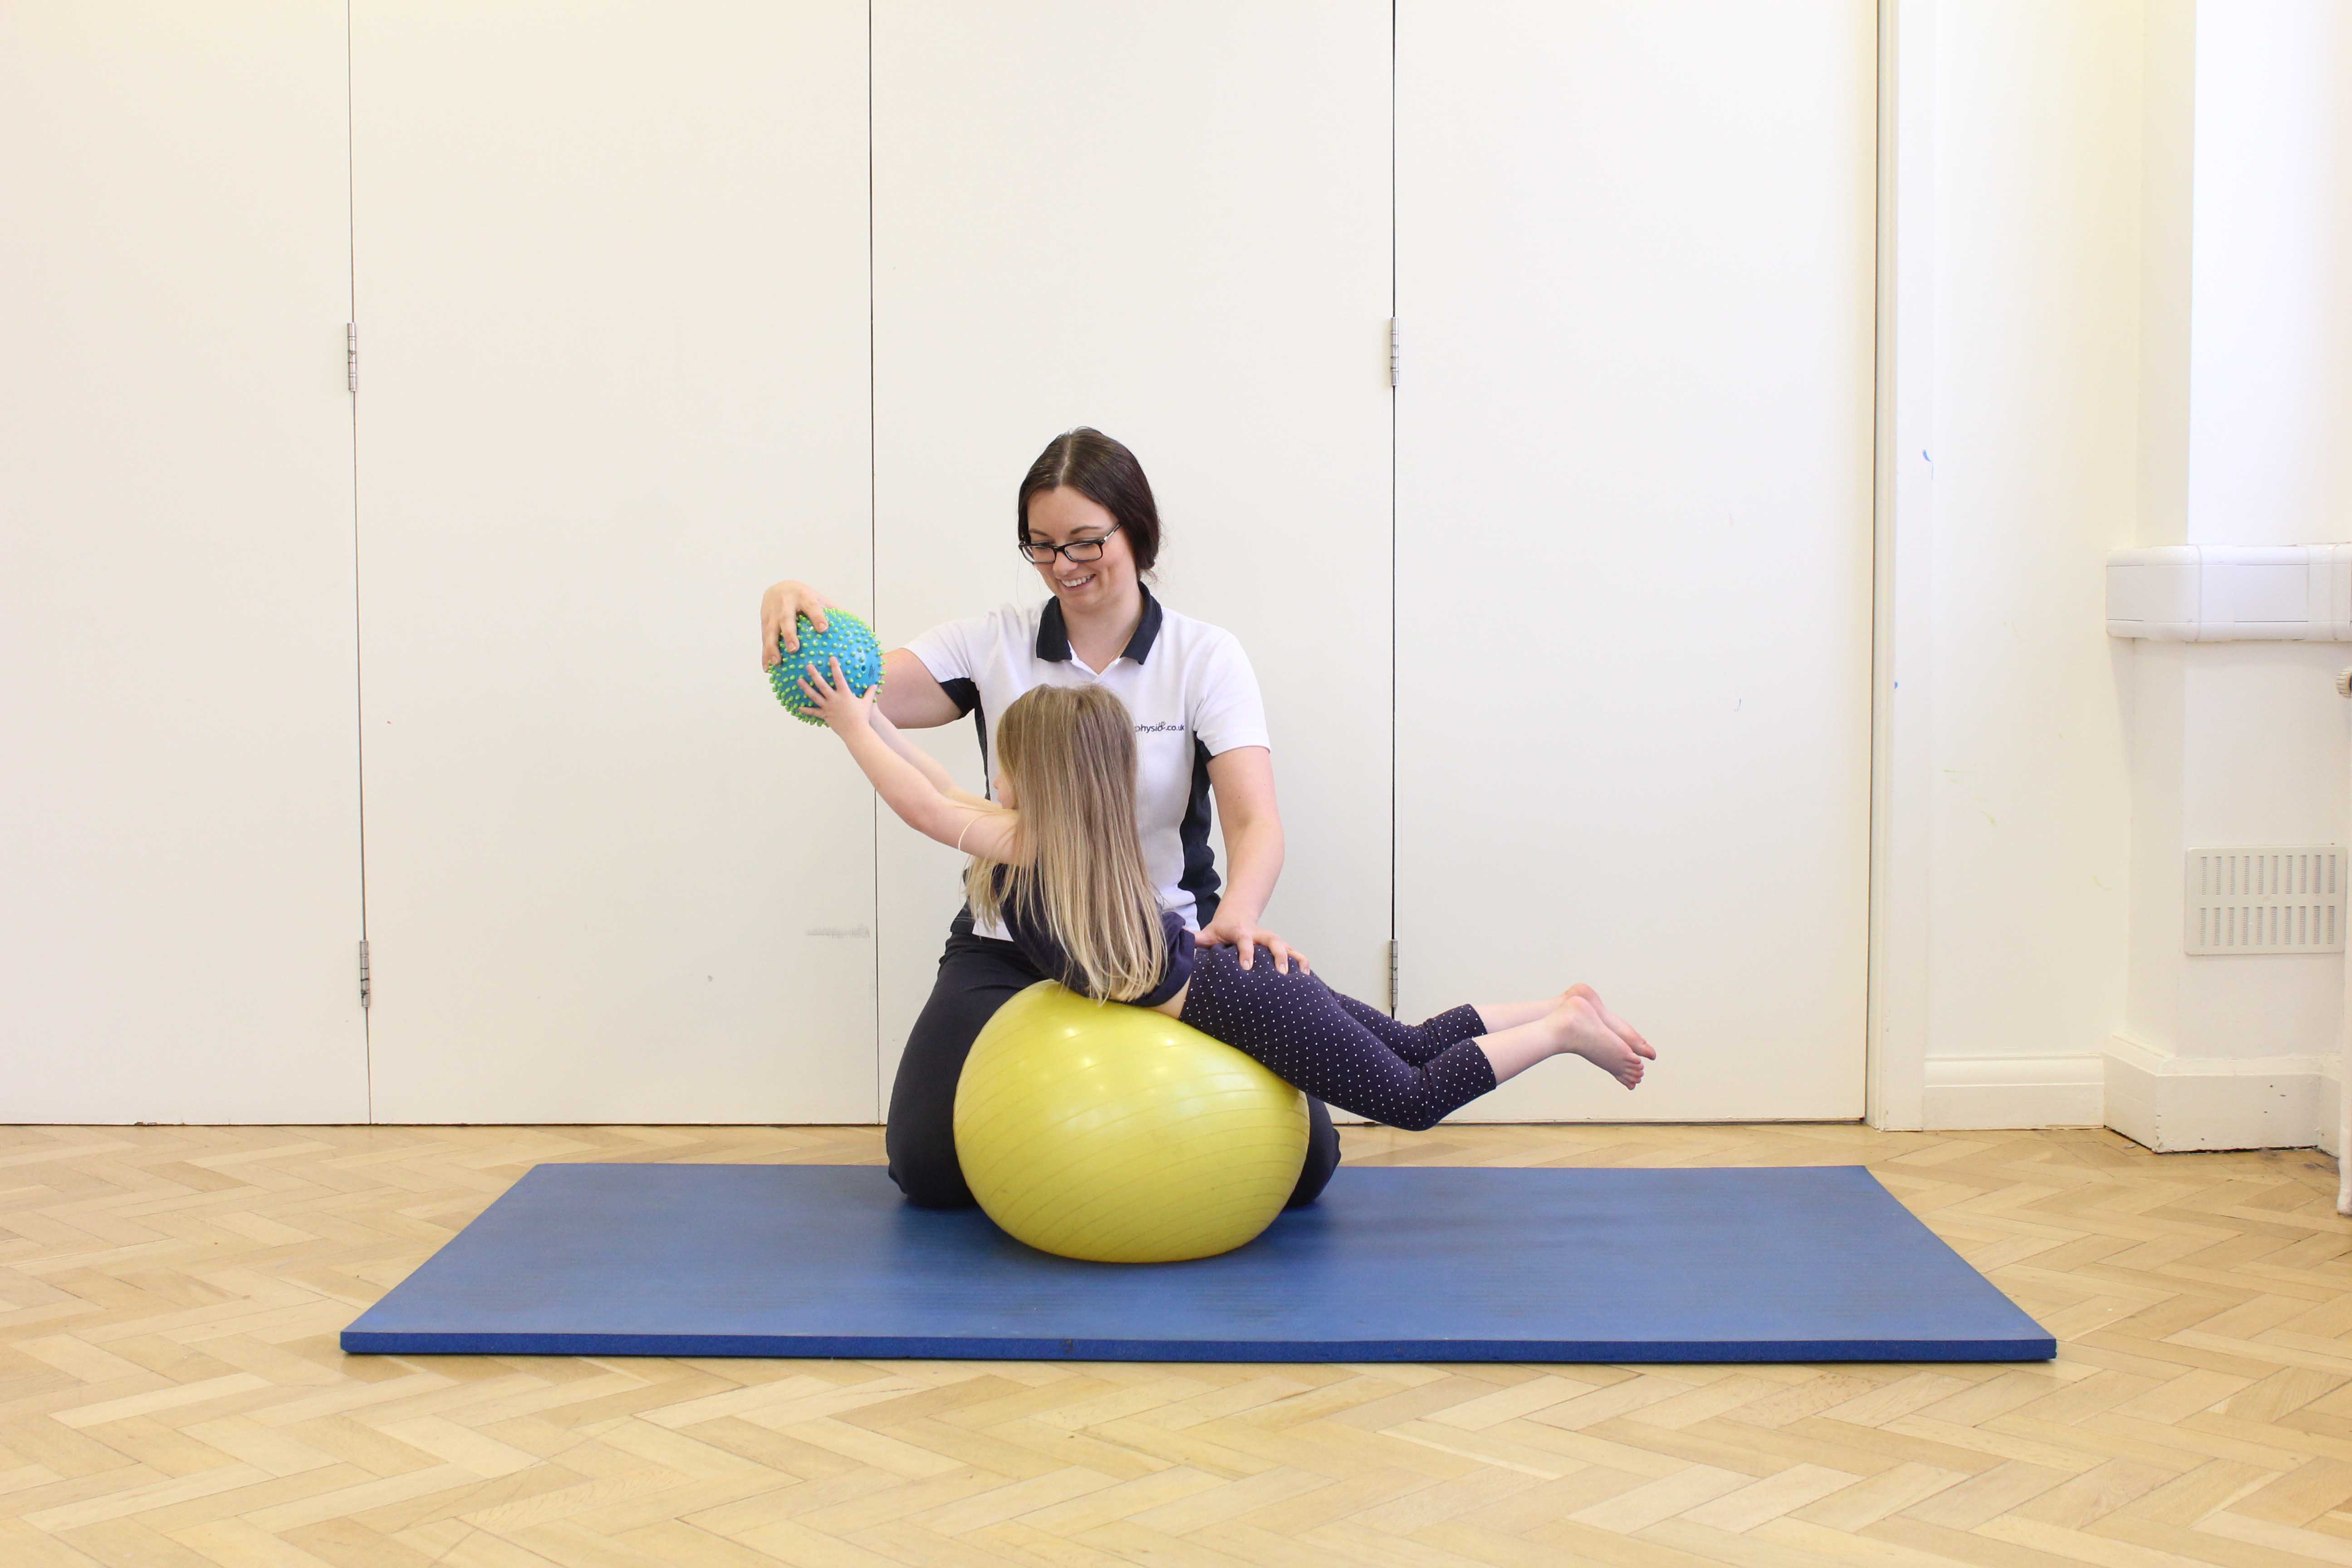 Stretching and toning exercises assisted by a paediatric physiotherapist